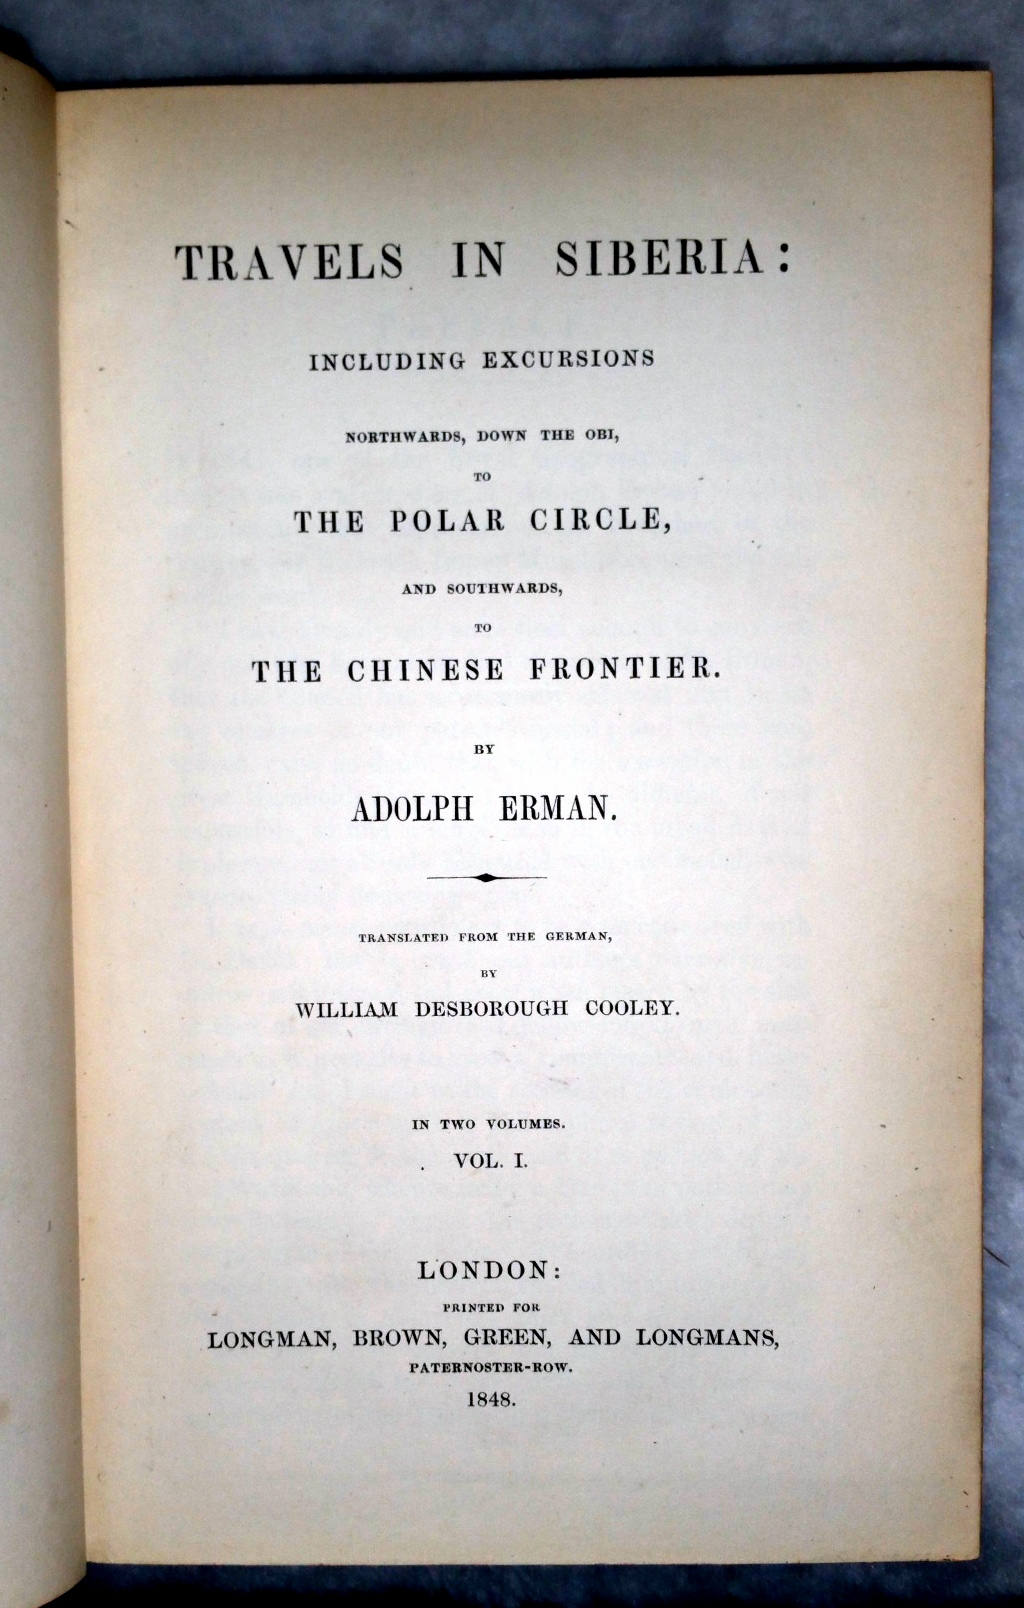 Image for Travels In Siberia:  Including Excursions Northwards, Down the Obi, to the Polar Circle, and Southwards to The Chinese Frontier (Two Volumes)